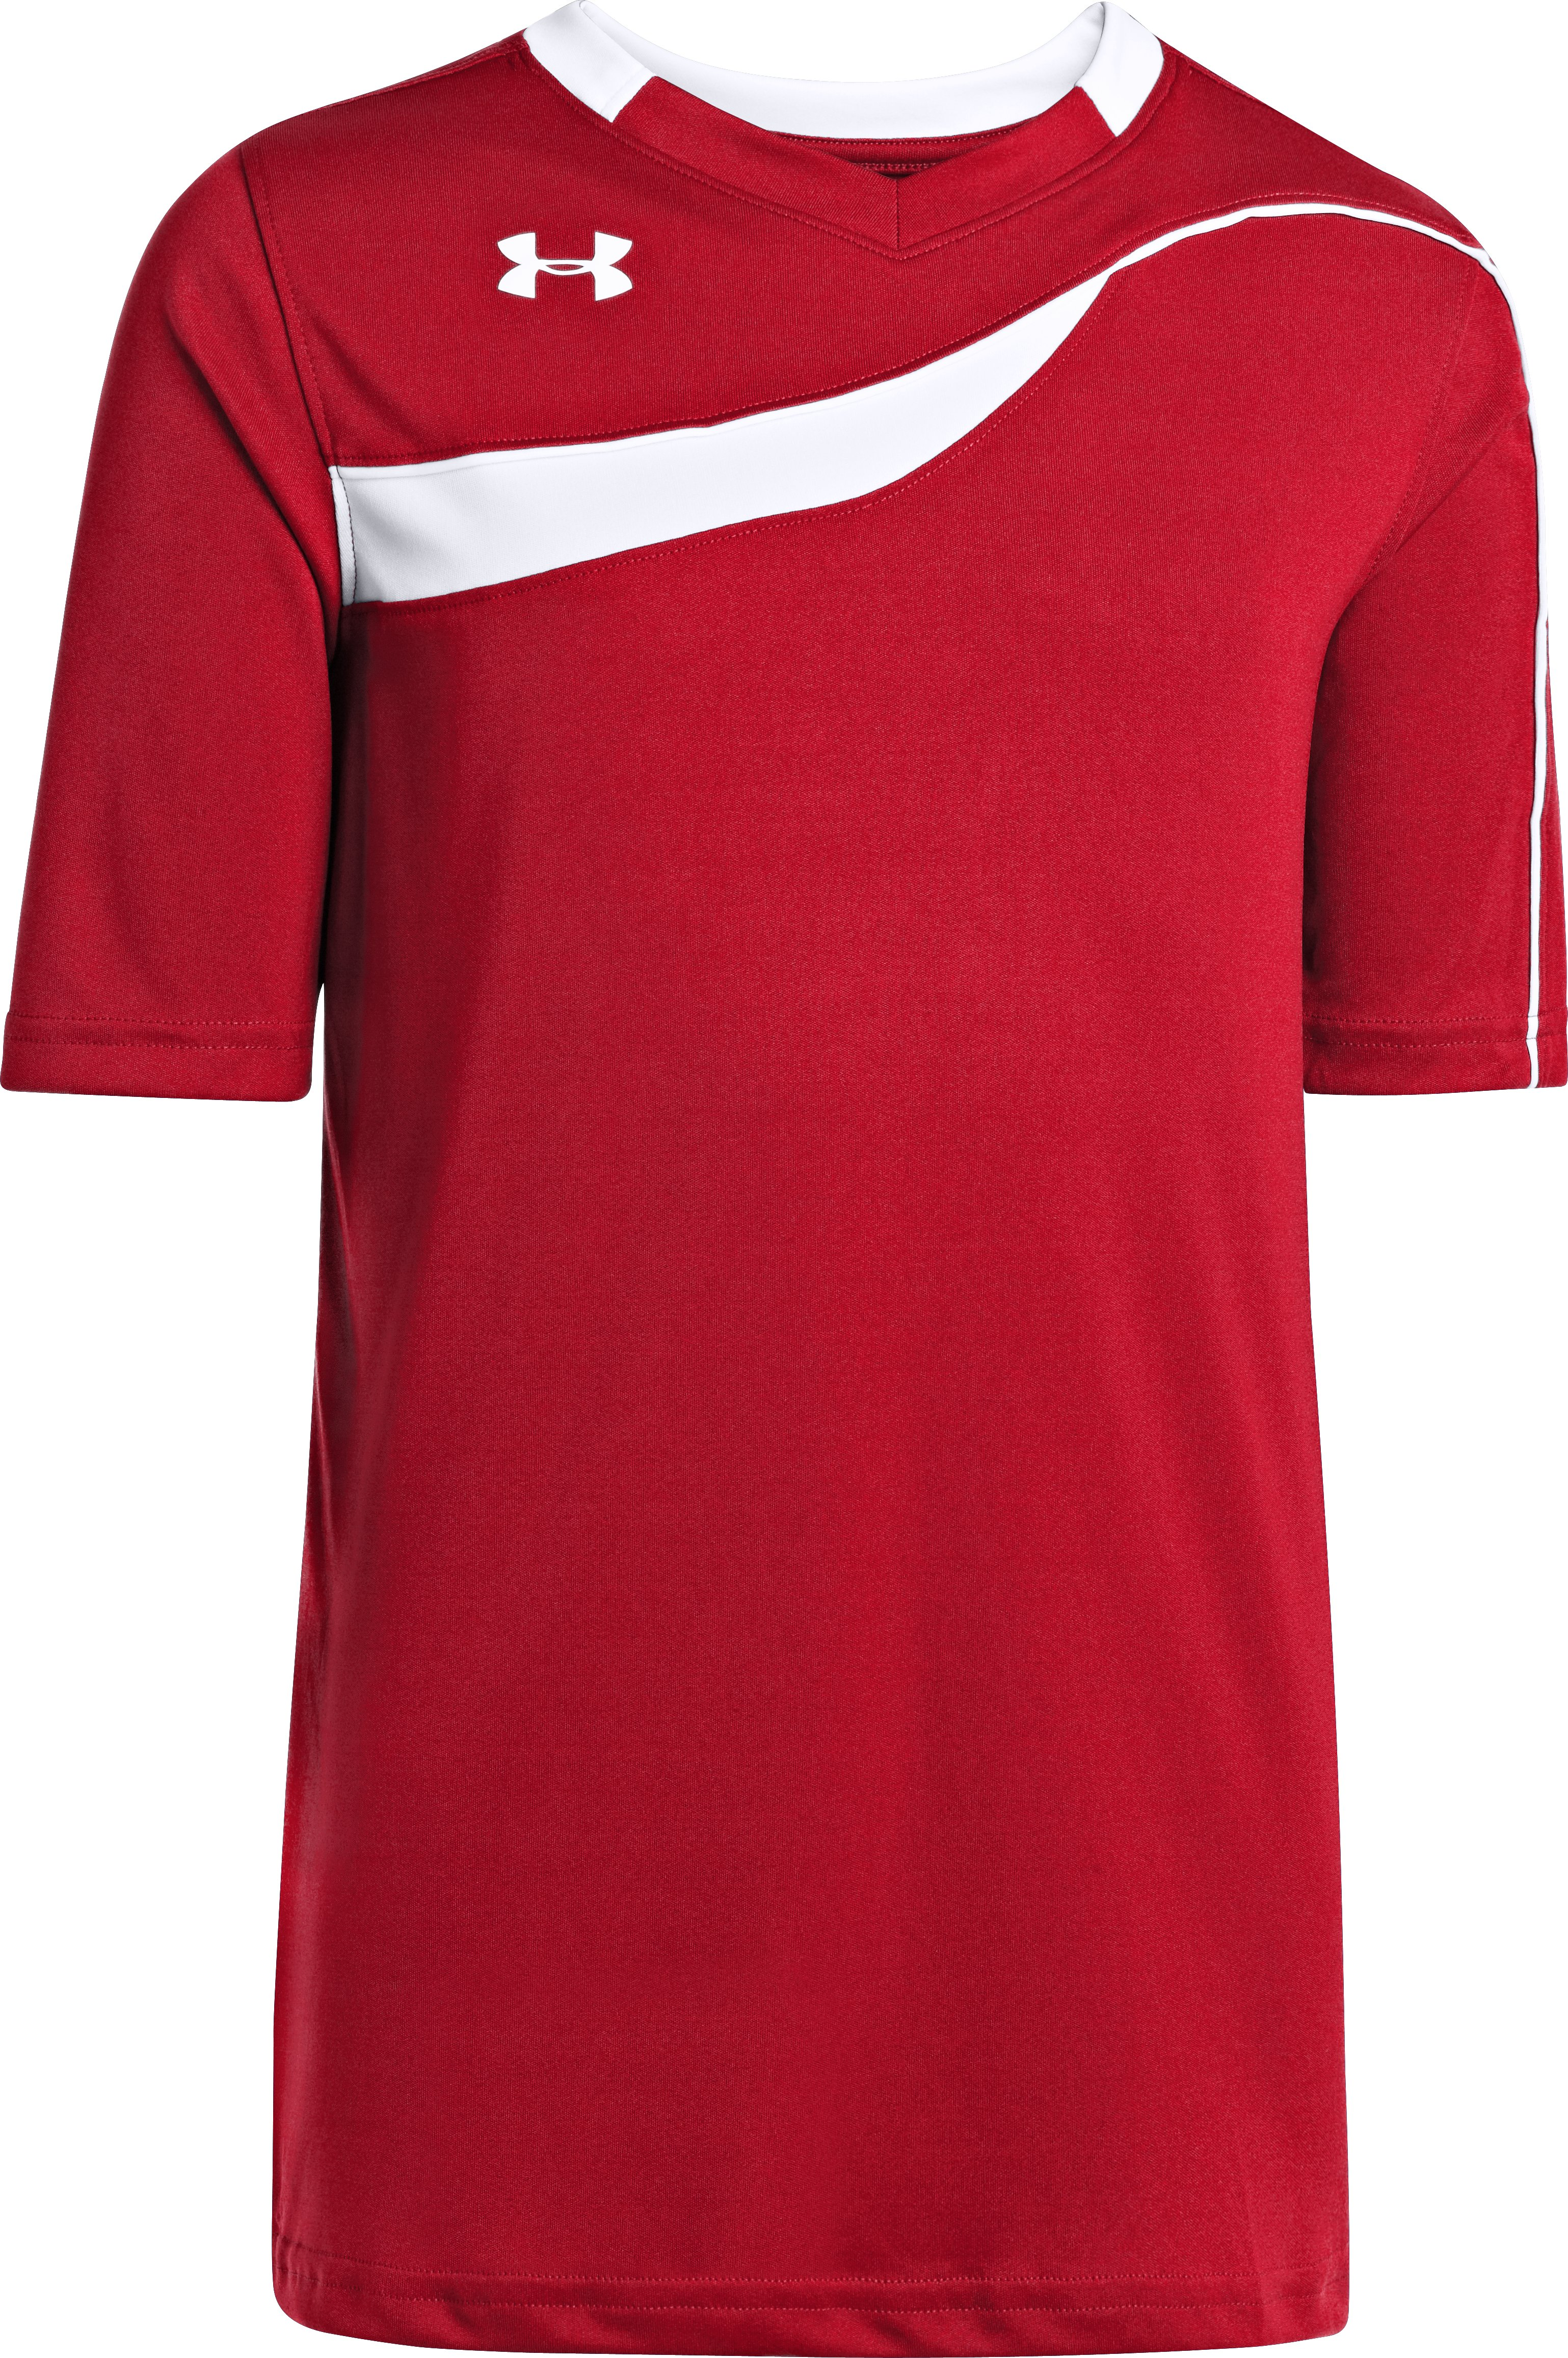 Boys' UA Chaos Short Sleeve Soccer Jersey, Red